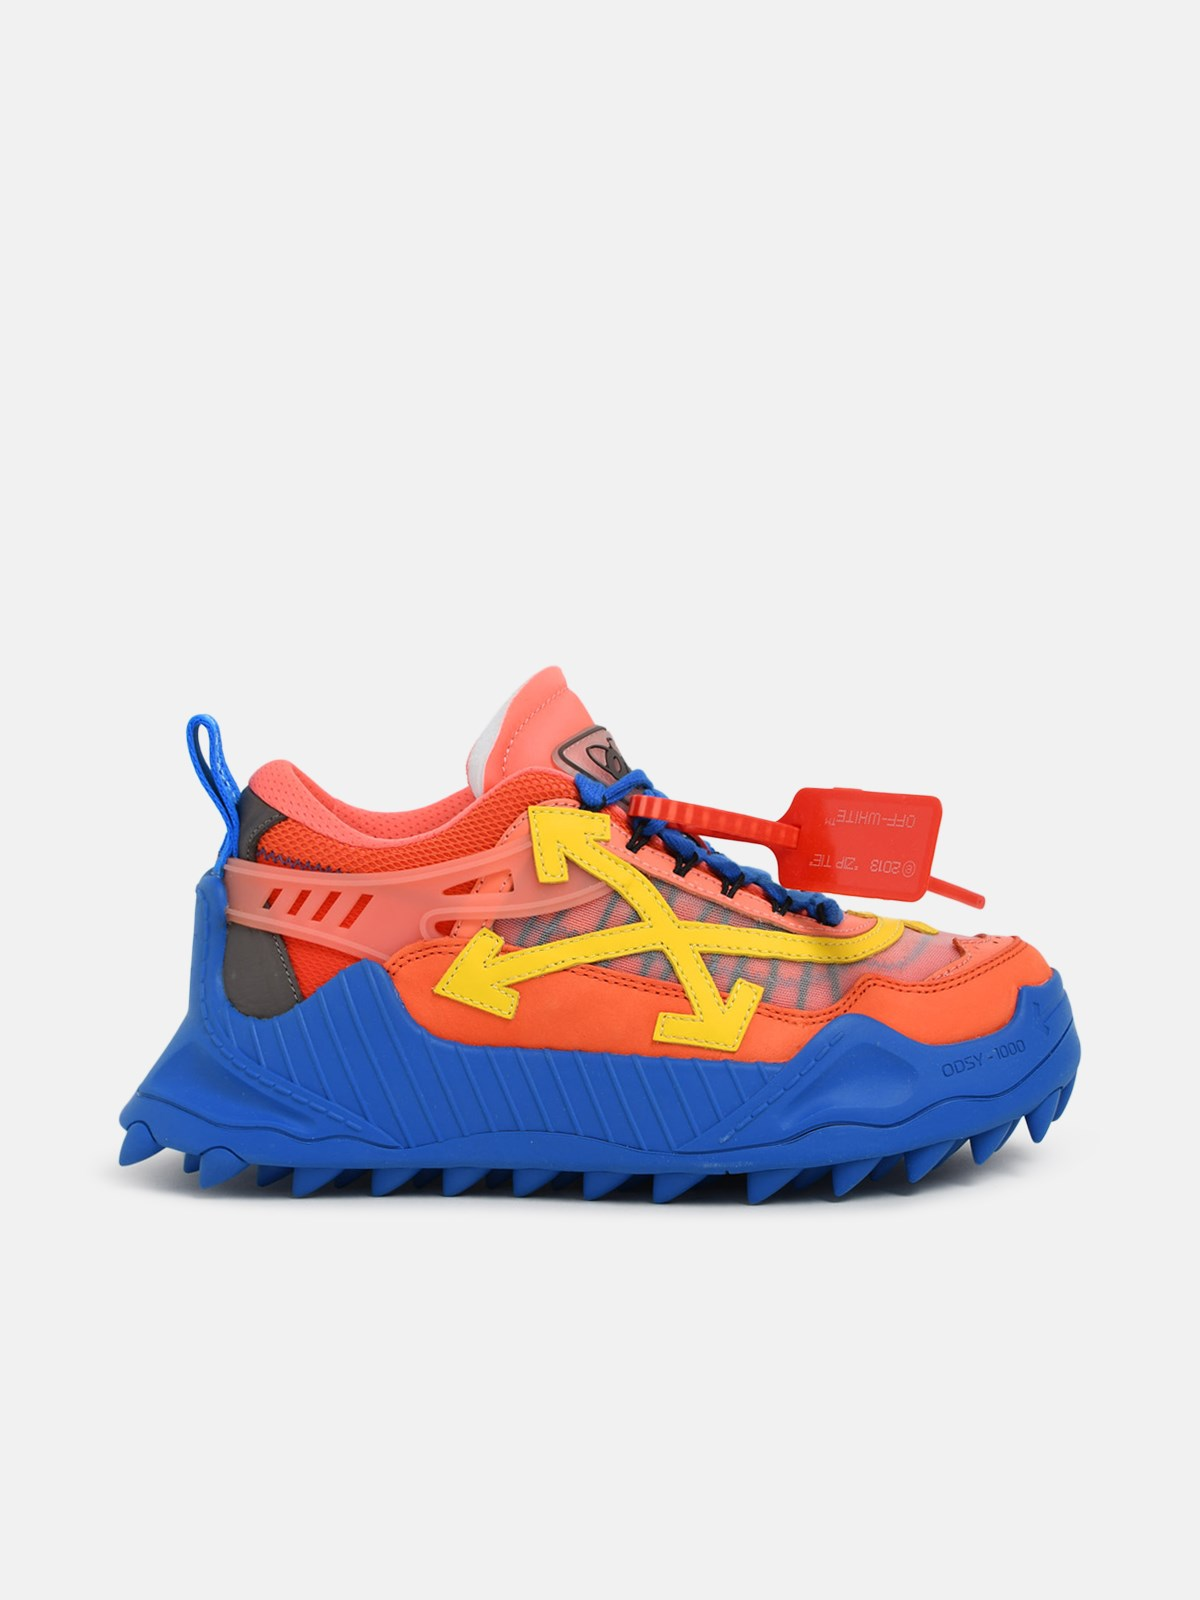 Off-White MULTICOLOR ODSY 1000 SNEAKERS